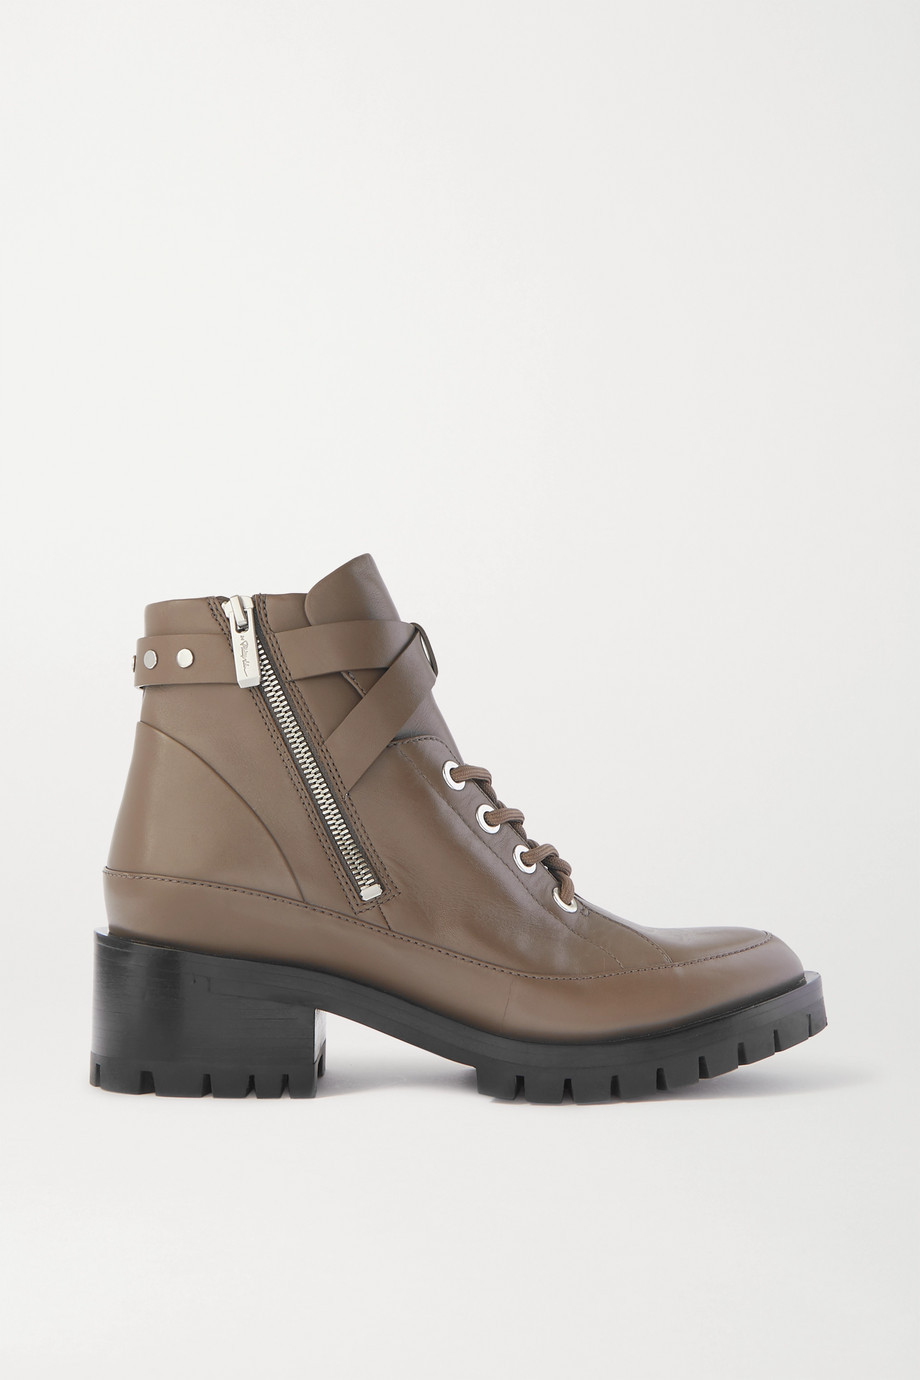 3.1 Phillip Lim + Space for Giants Hayett lace-up leather ankle boots